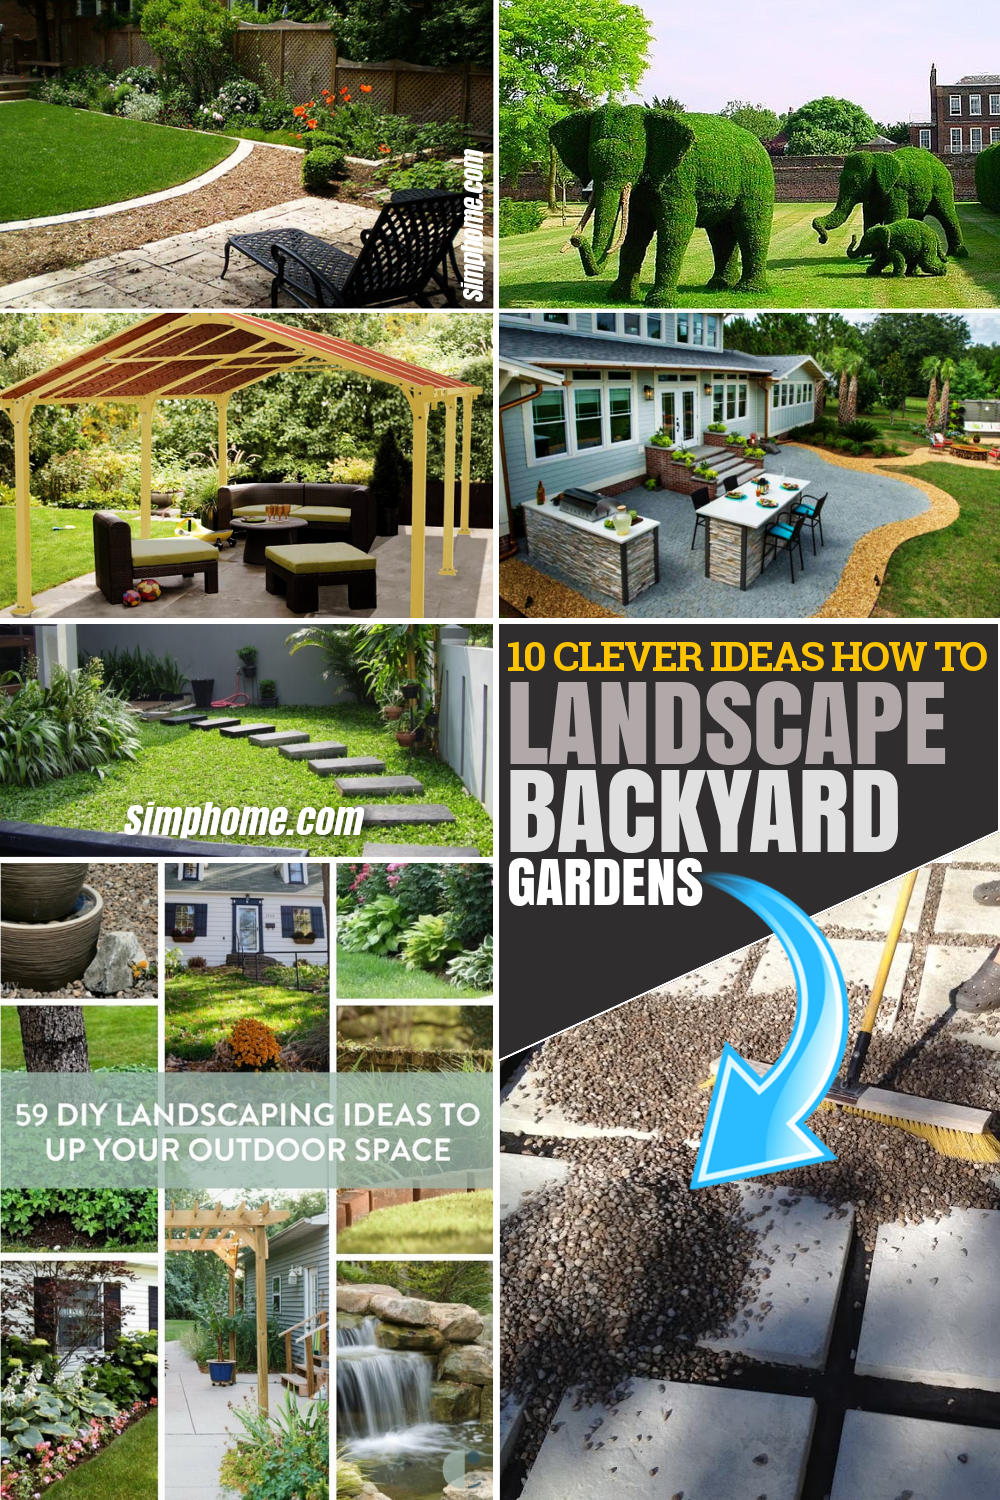 30 Clever Diy Ideas How To Landscape Backyard Garden Simphome